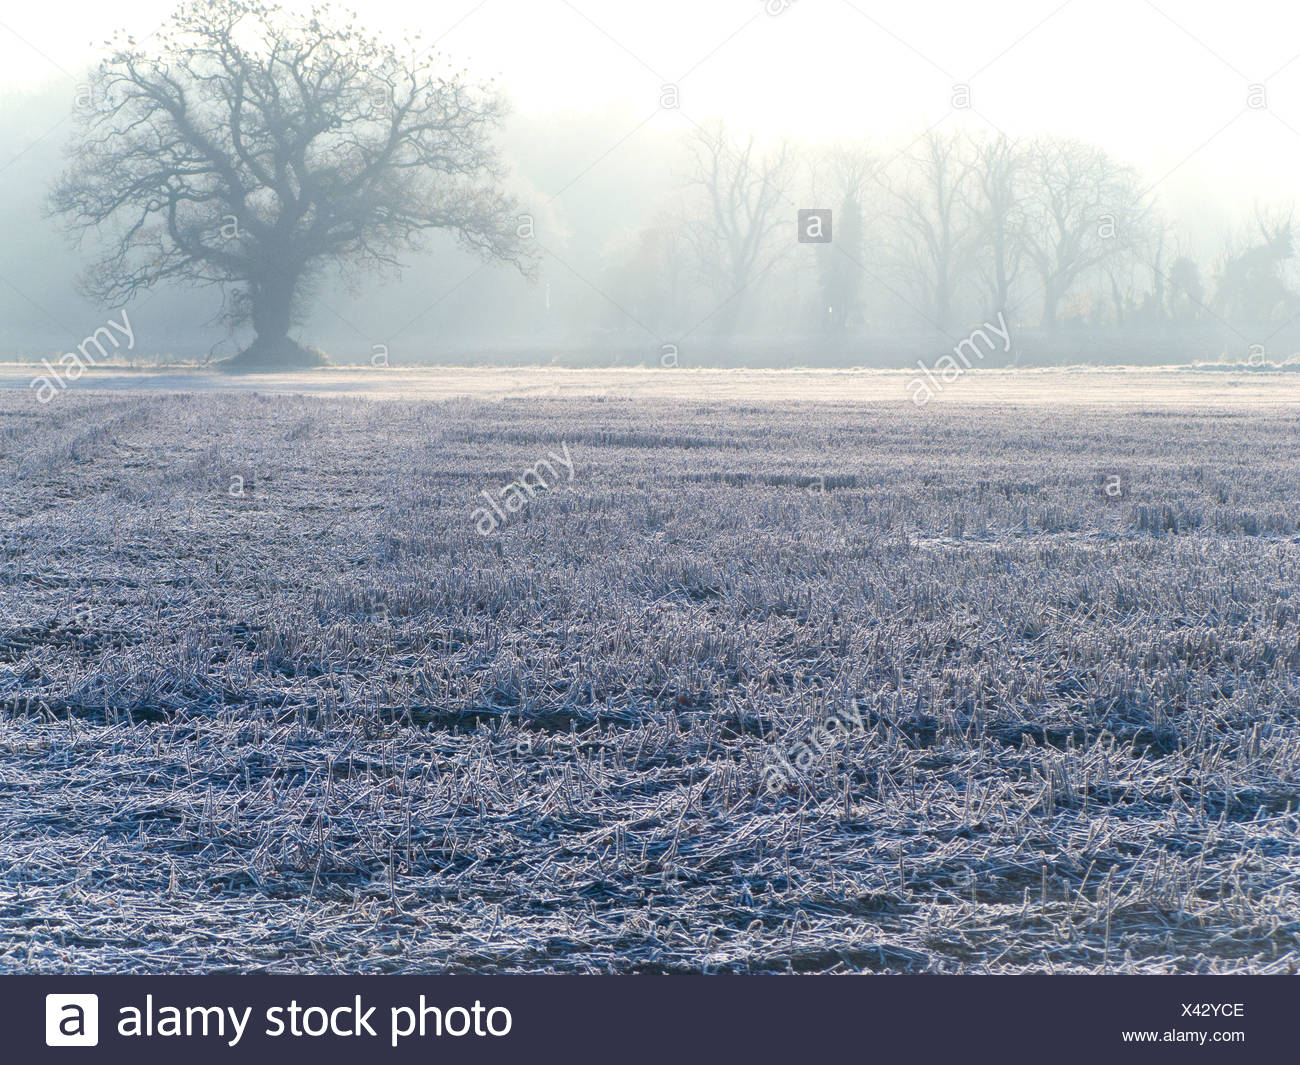 Tree and field covered in frost - Stock Image